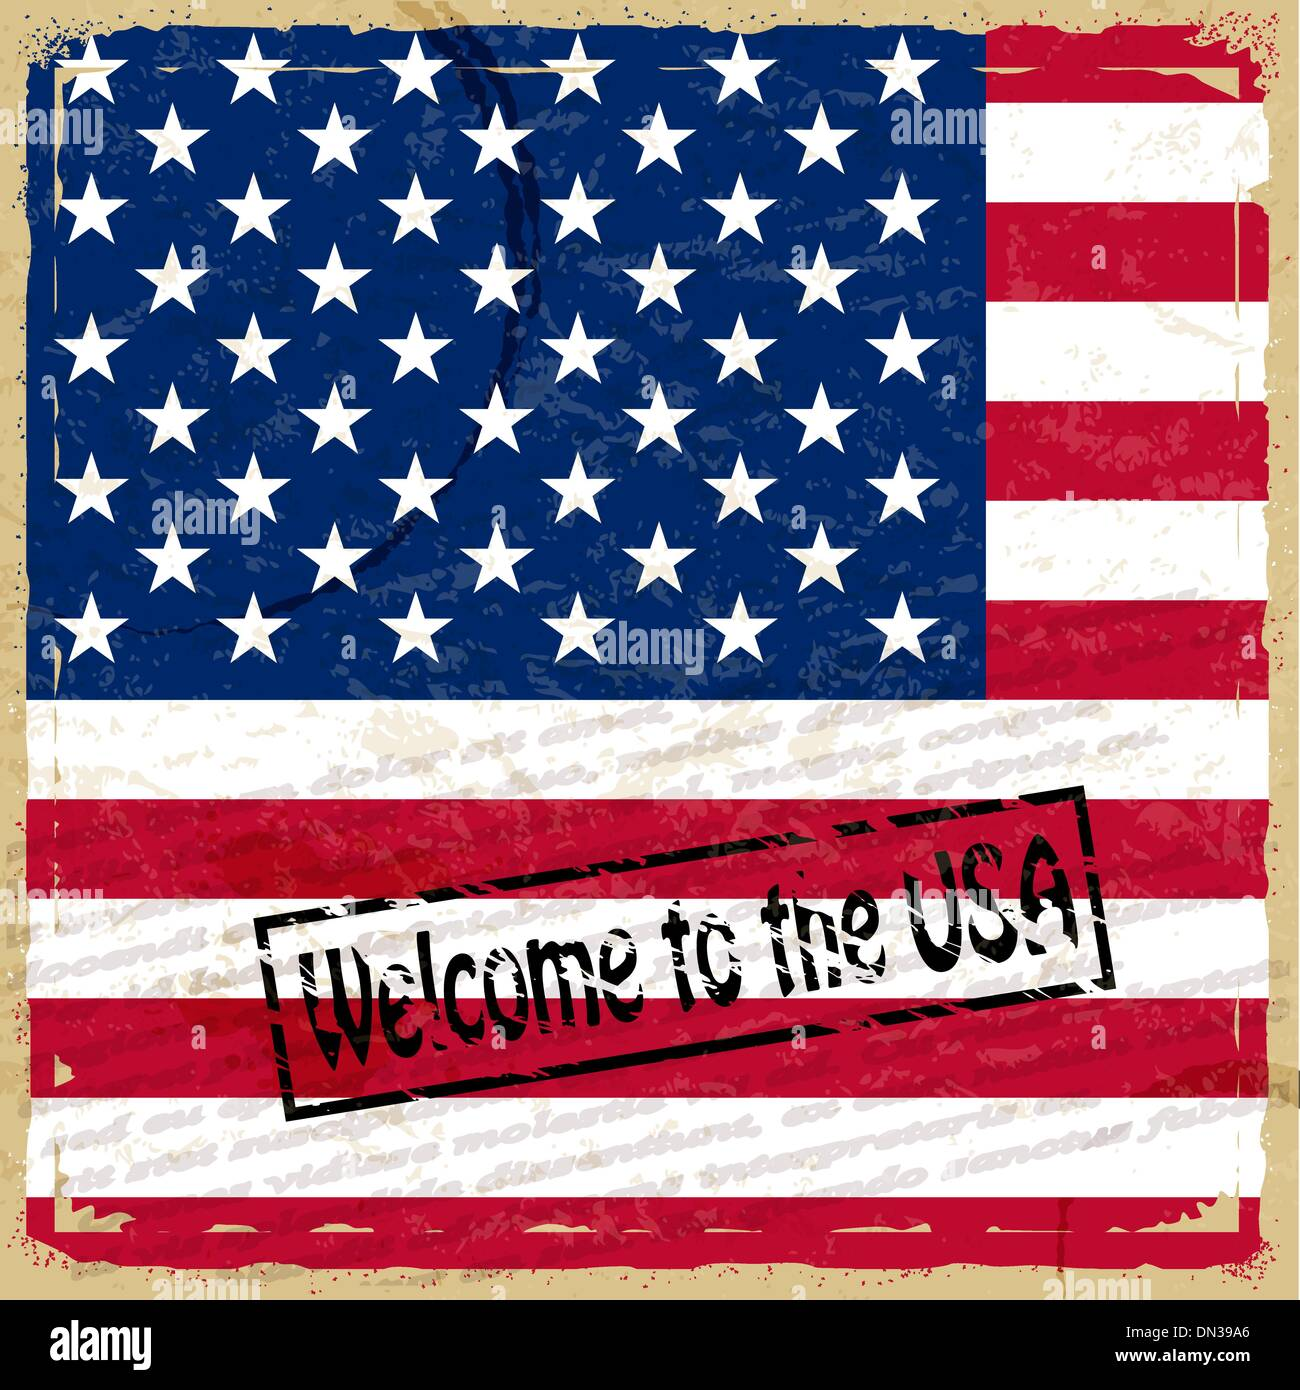 Vintage background with U.S. flag - Stock Vector